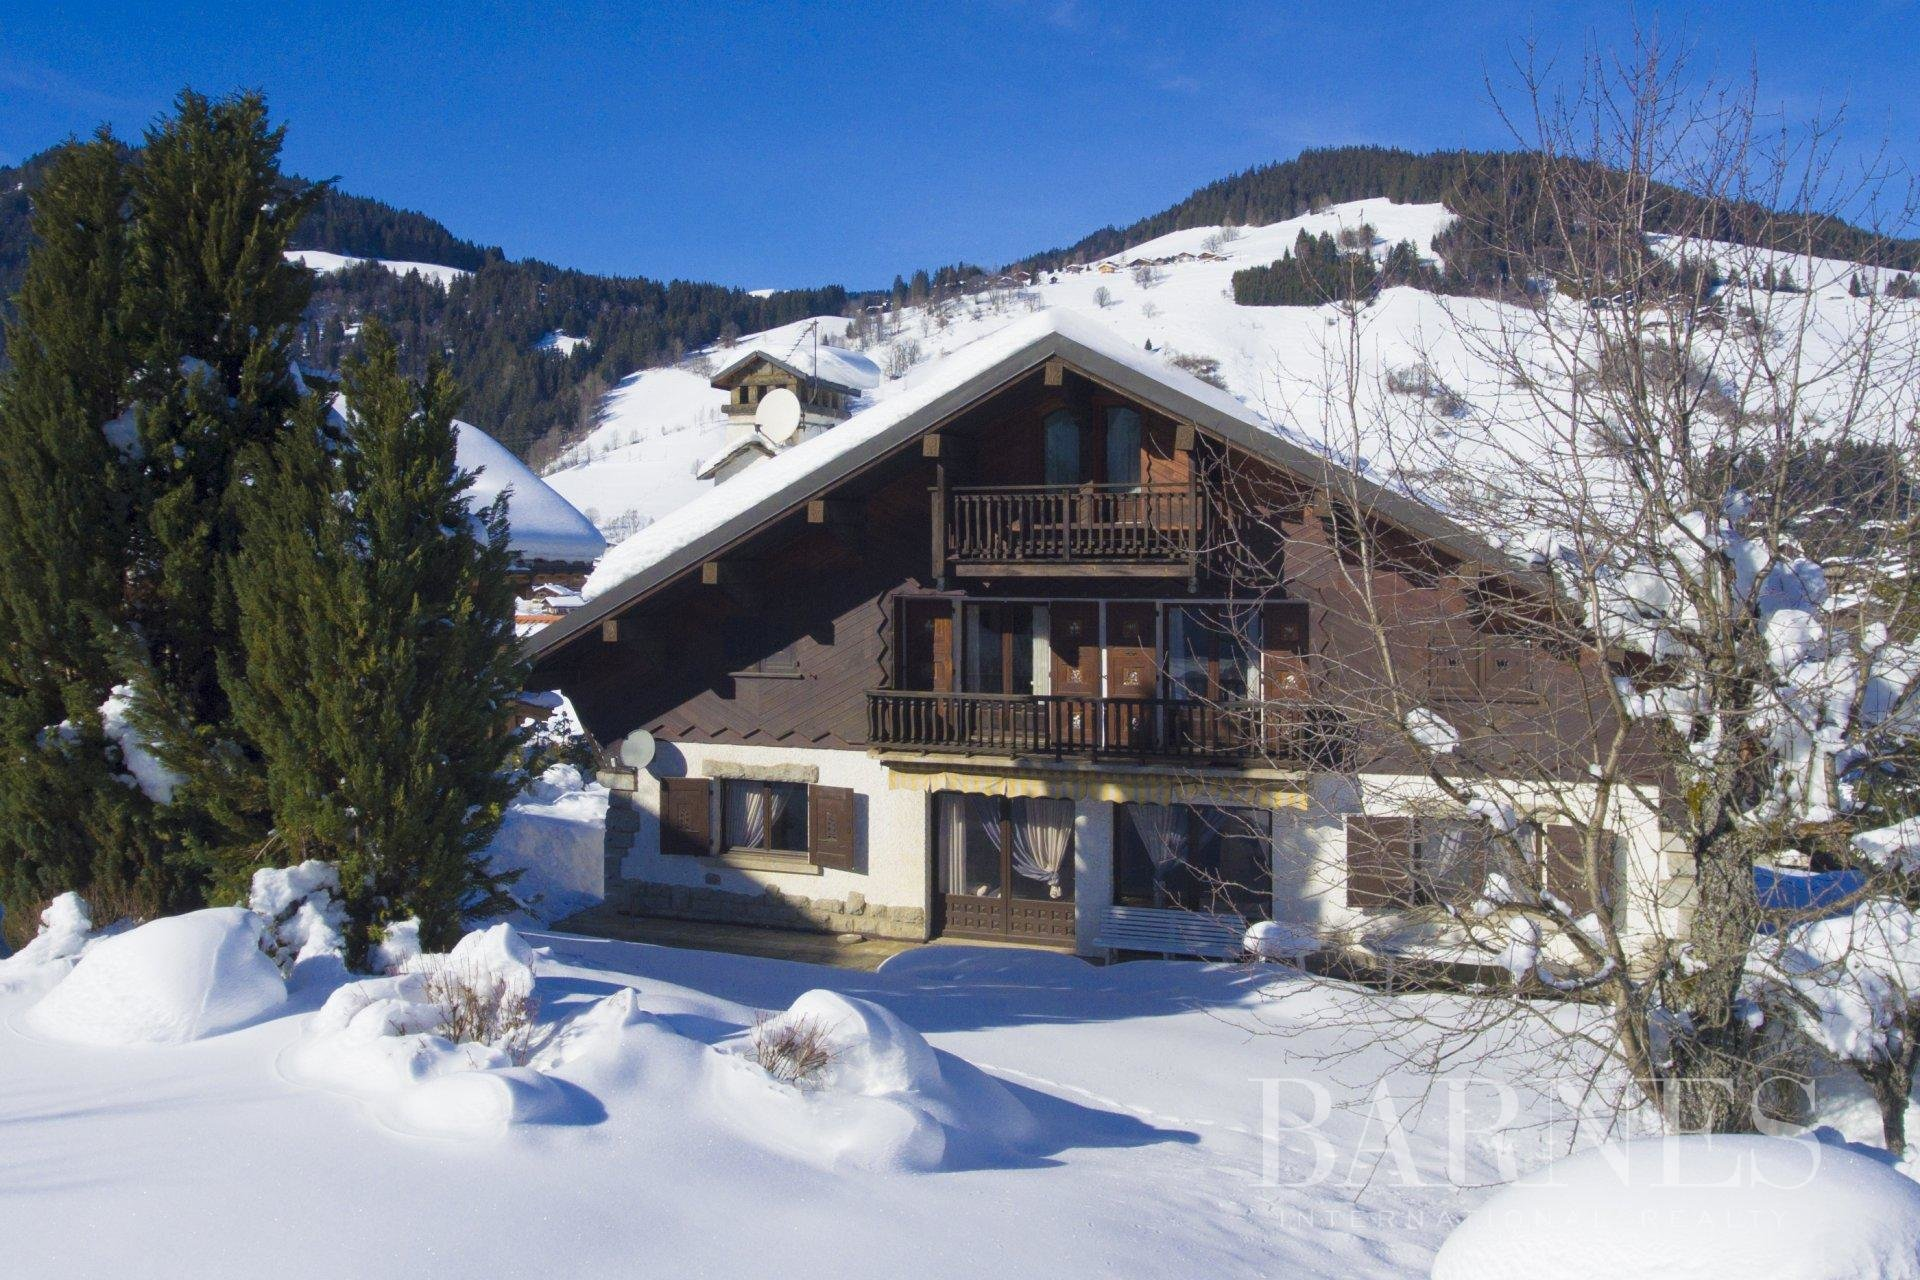 Chalet to renovate, sitting on 664 square meters of buildable land. Chalet in Megeve